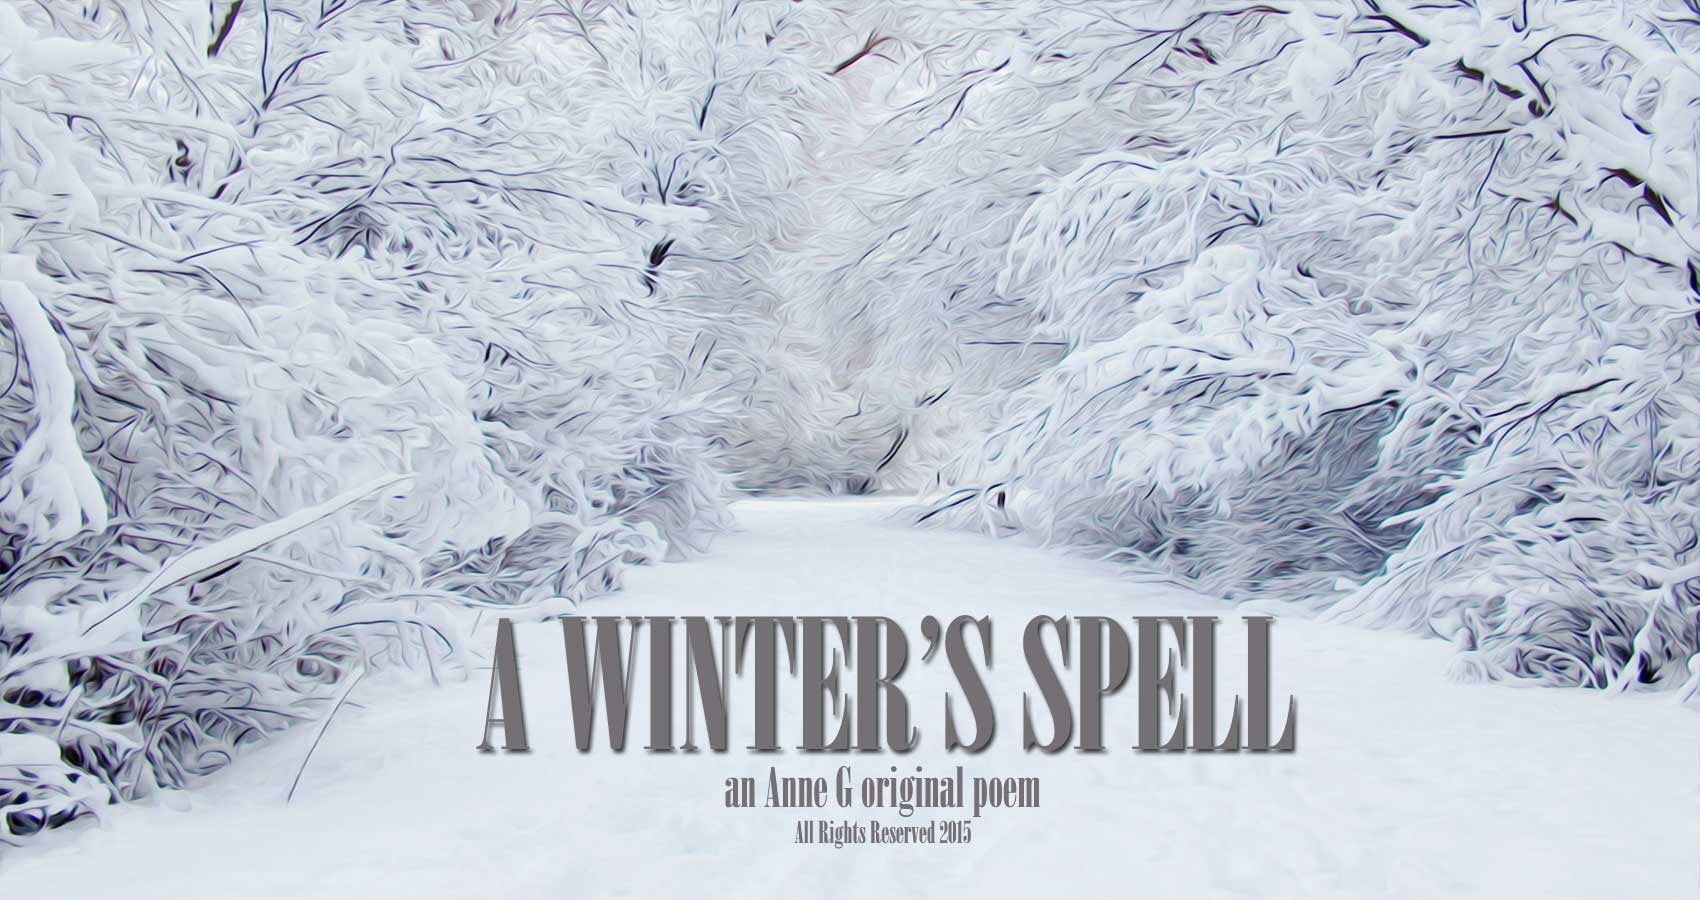 spillwords.com A Winter's Spell by Anne G